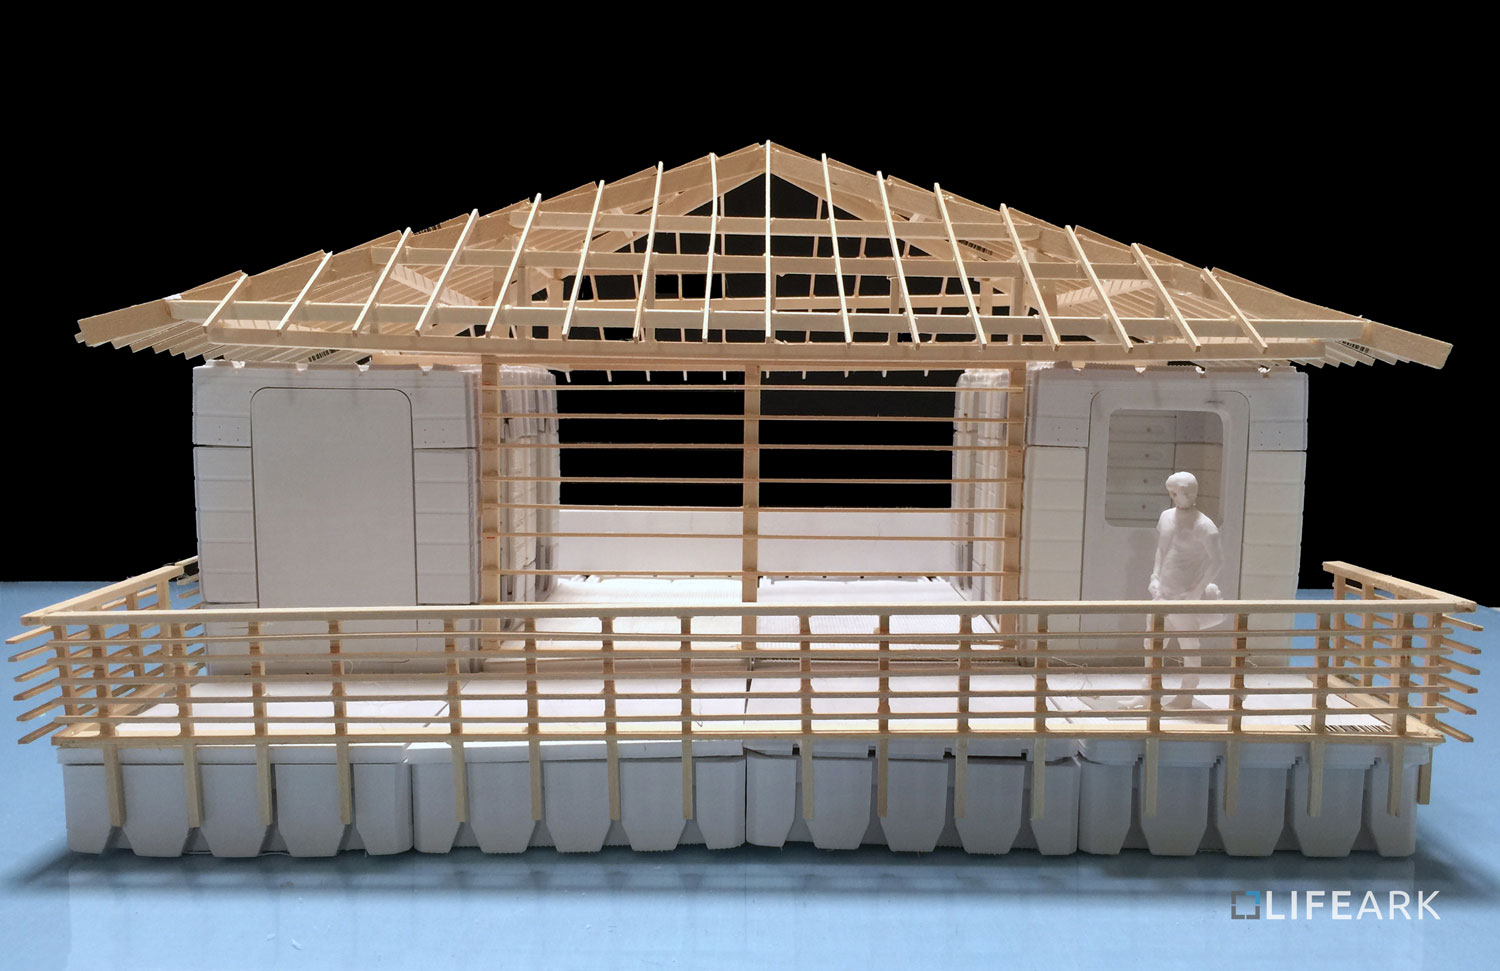 LifeArk Amazon Typical Dwelling Model: Wooden components will utilize local material, skill and labor.